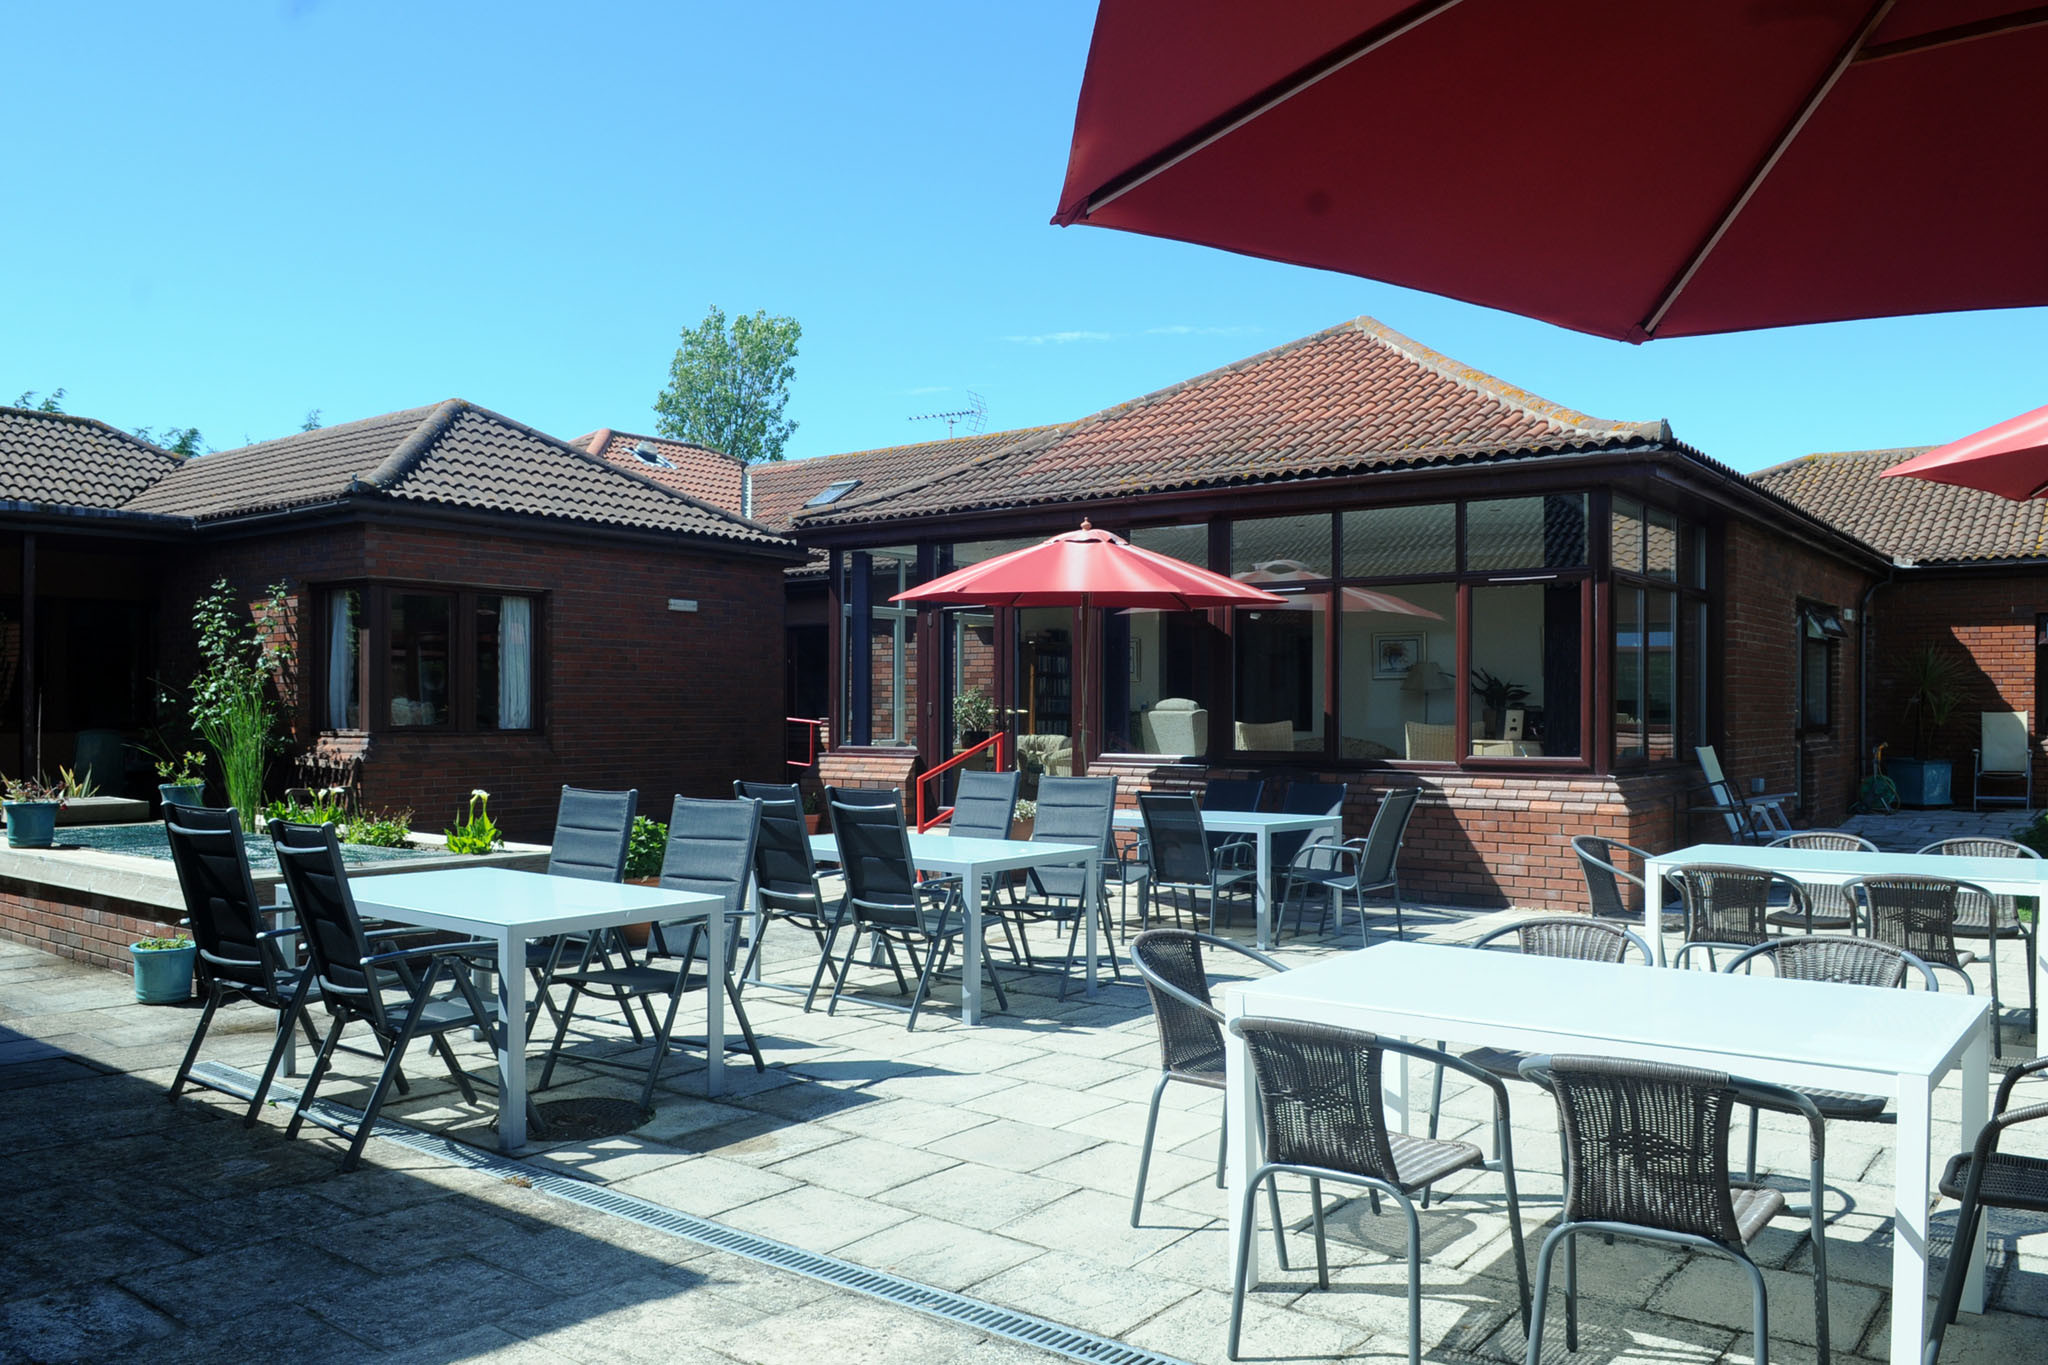 Manorfield Residential Home Patio Area